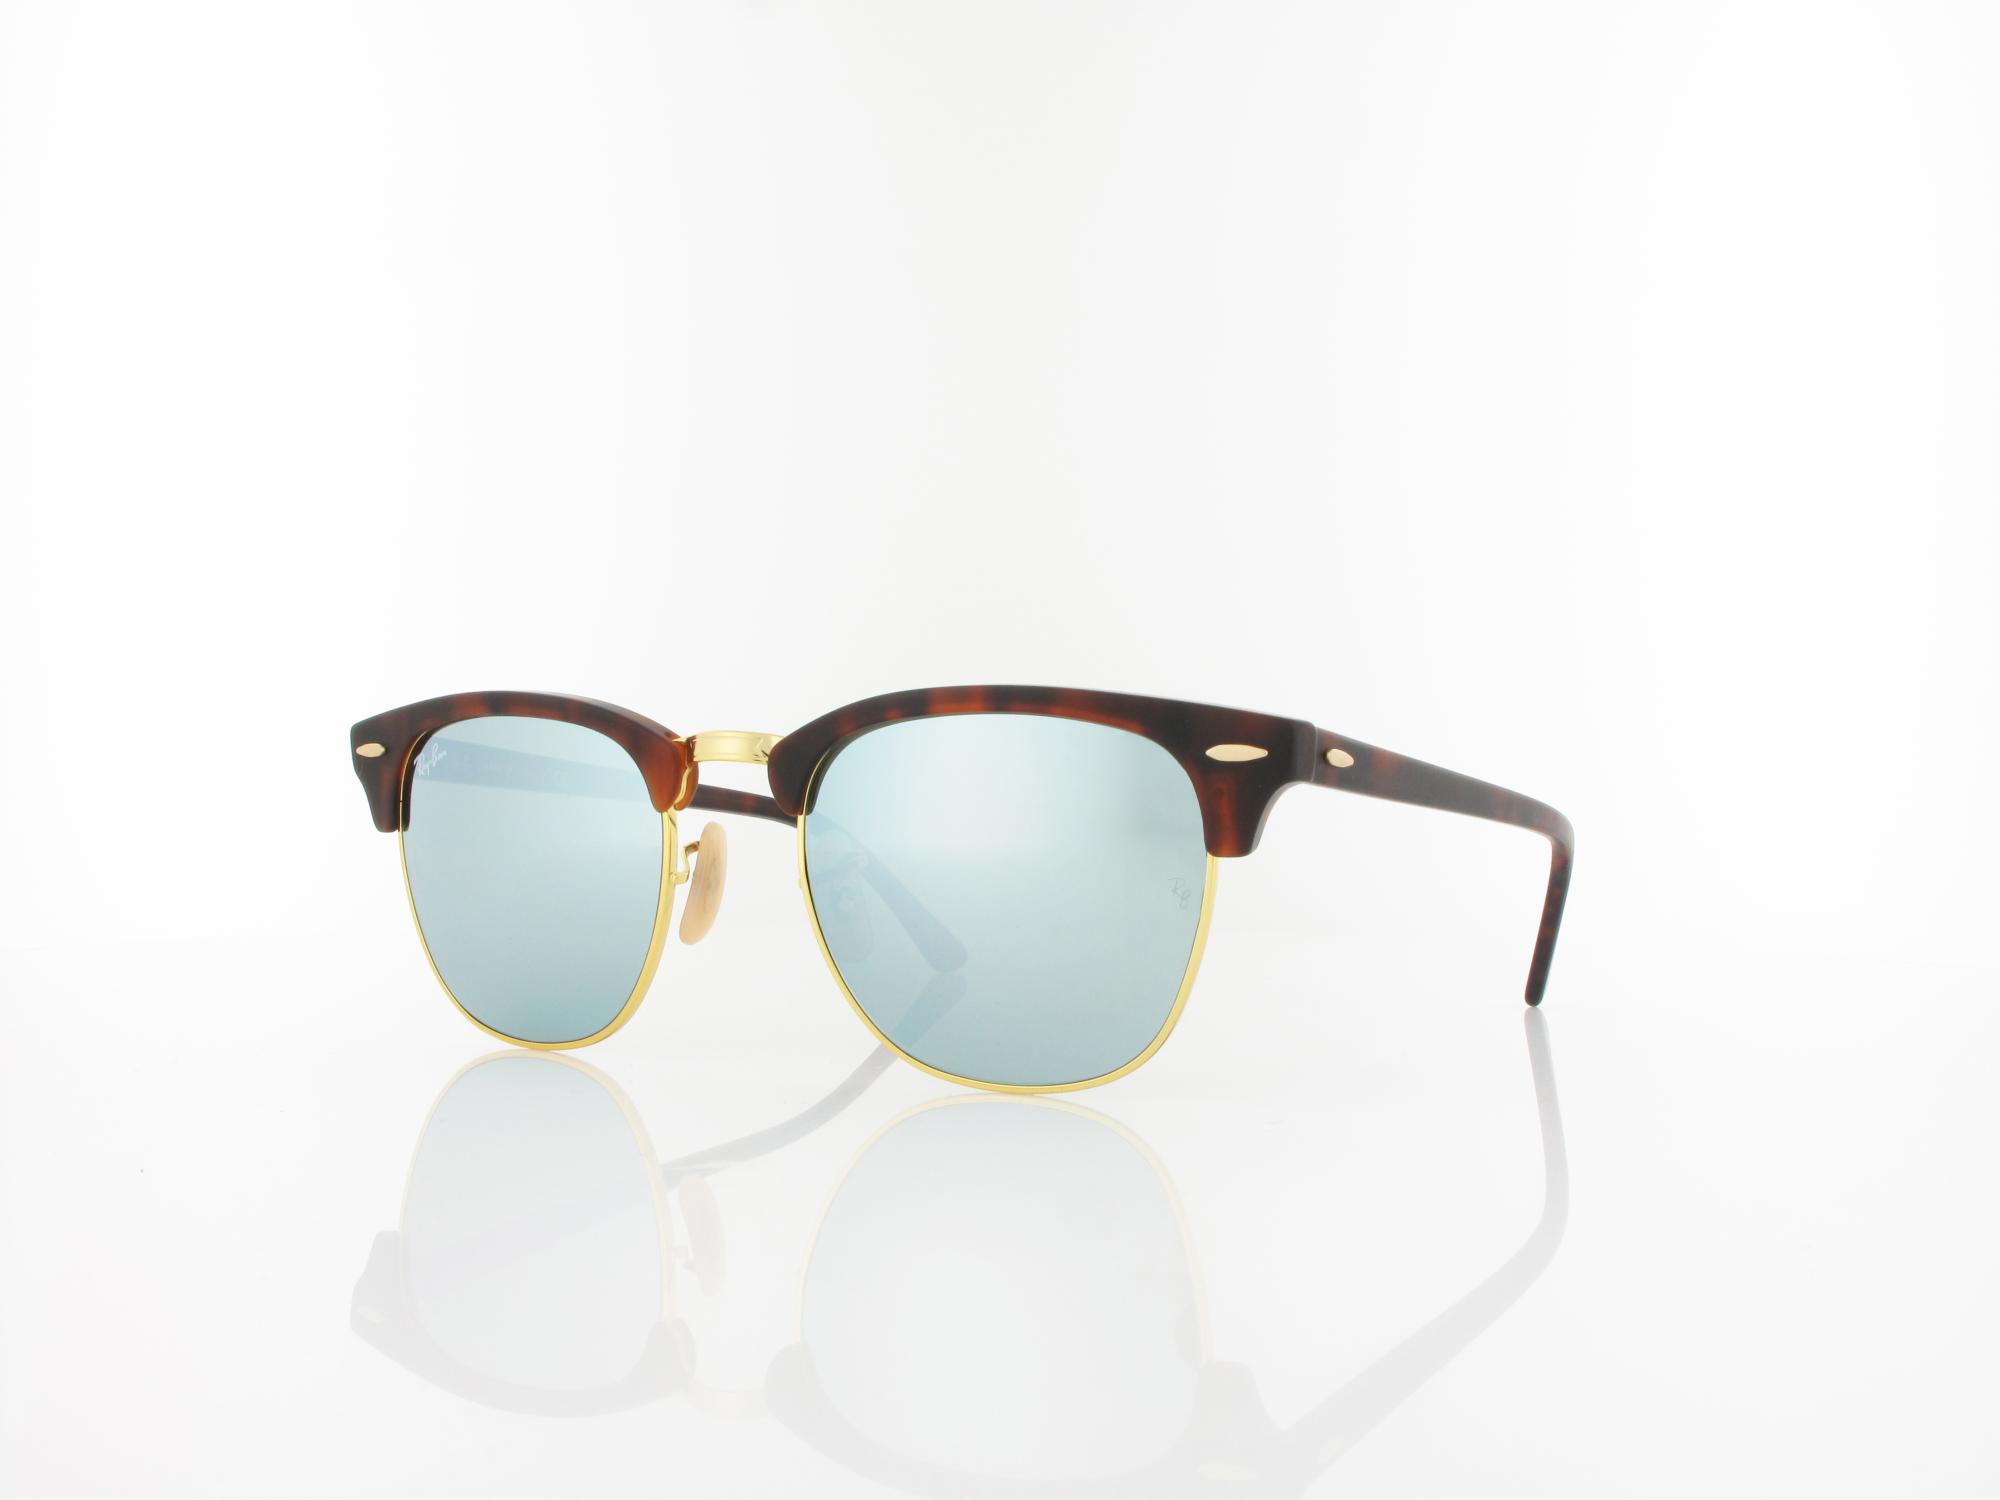 Ray Ban | Clubmaster RB3016 114530 51 | sand havana gold / light green mirror silver